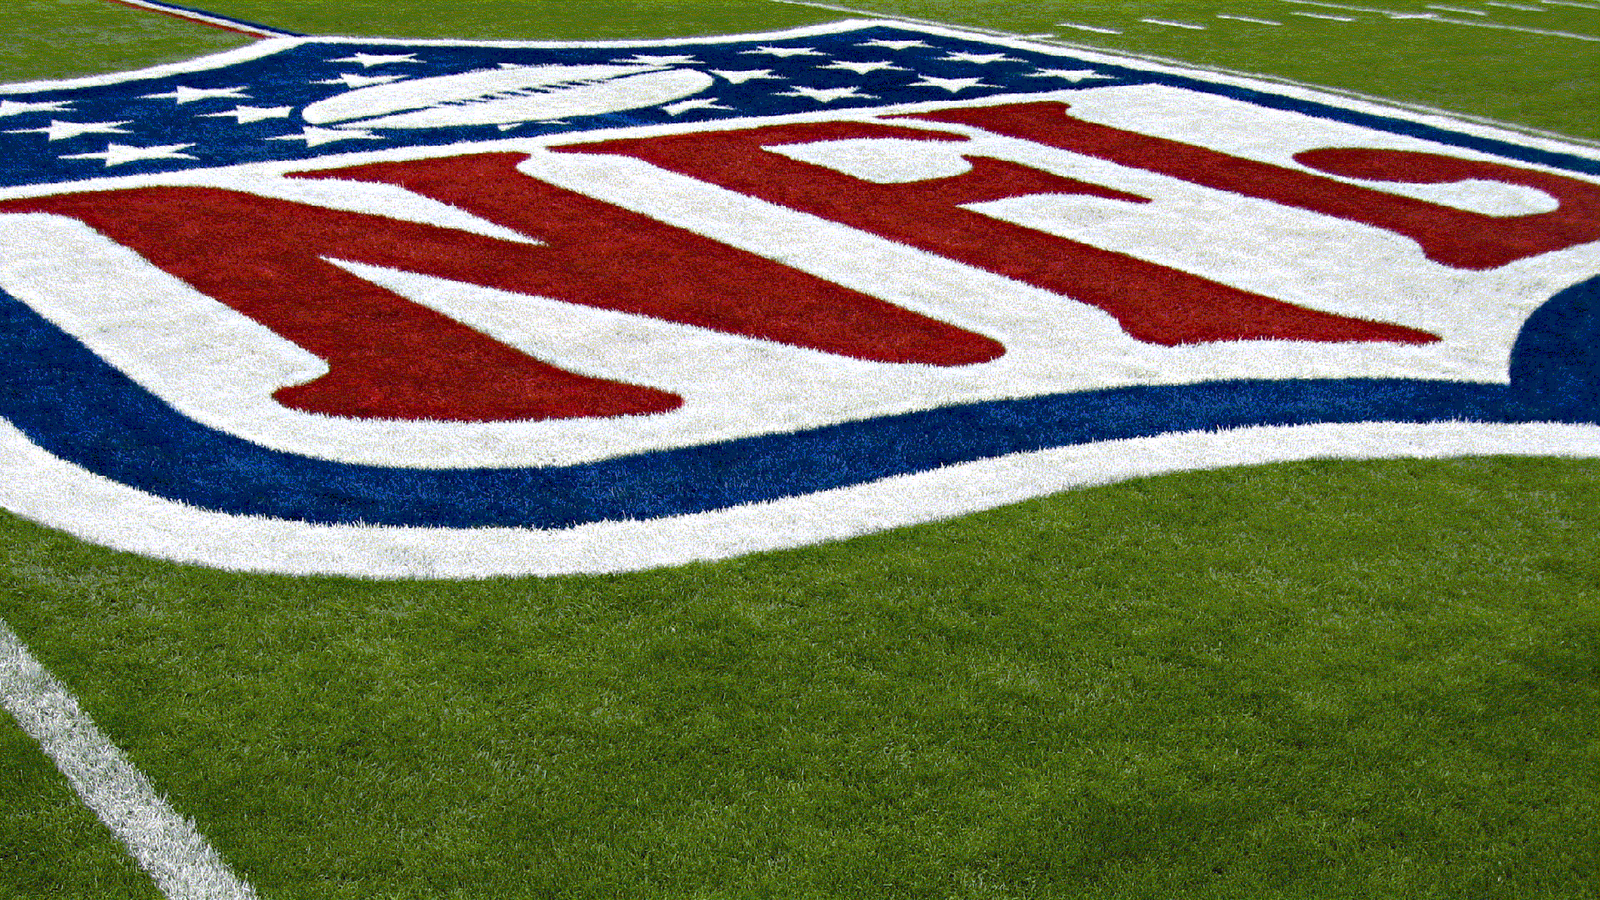 NFL 2012 - Free Download NFL Football HD Wallpapers for iPad and Nexus 7 | Tips and News about ...